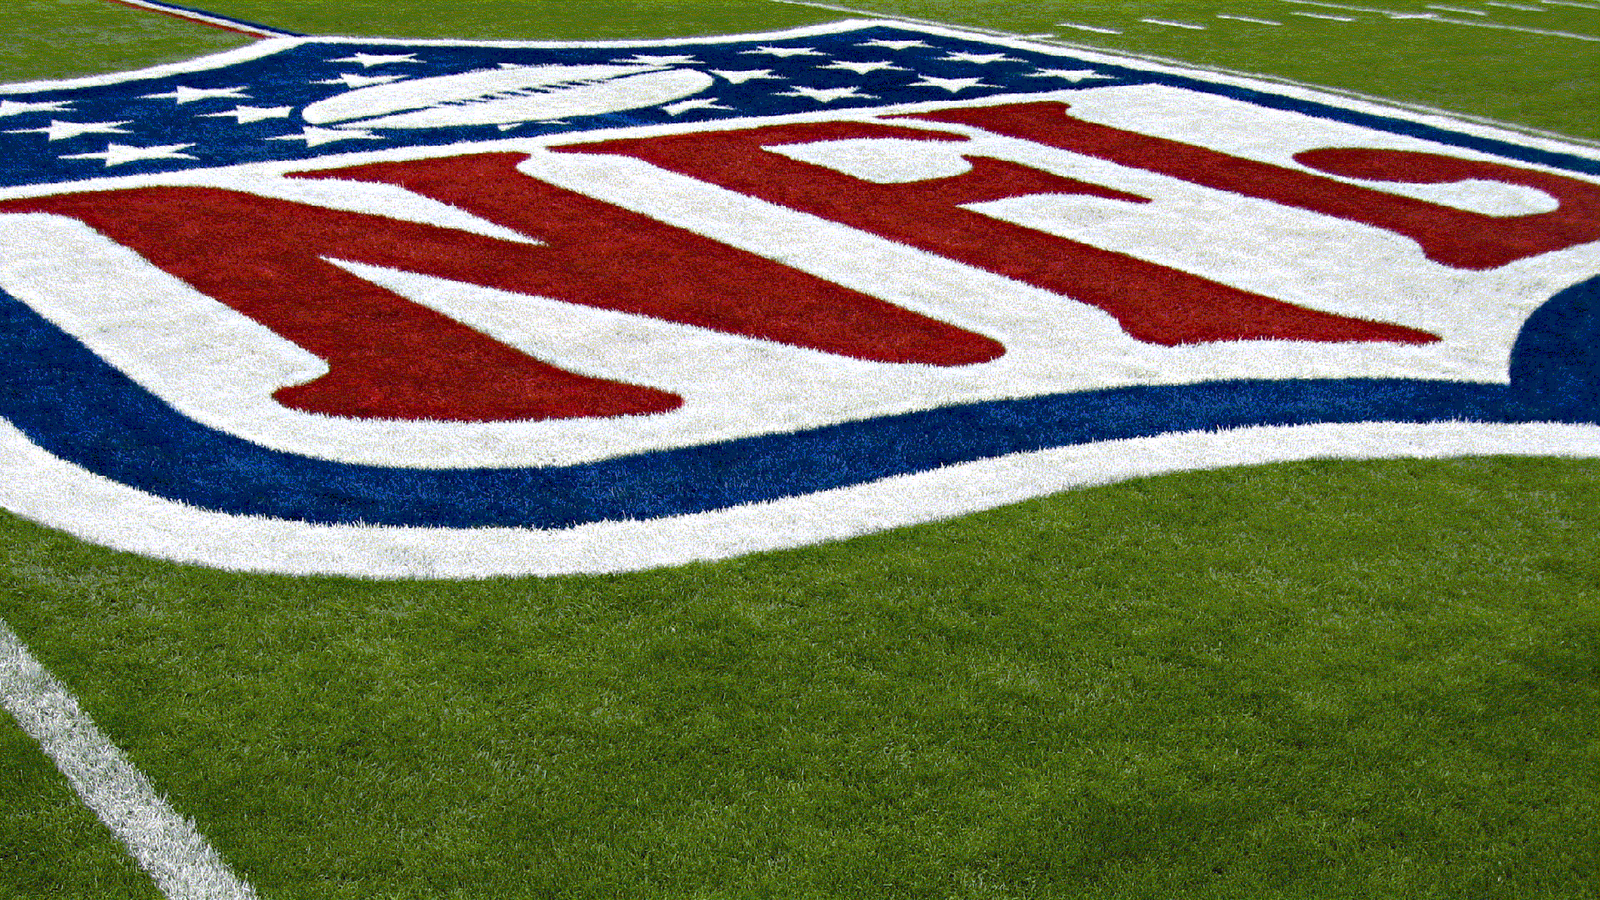 NFL 2012 - Free Download NFL Football HD Wallpapers for iPad and Nexus 7 | Tips and News about ...